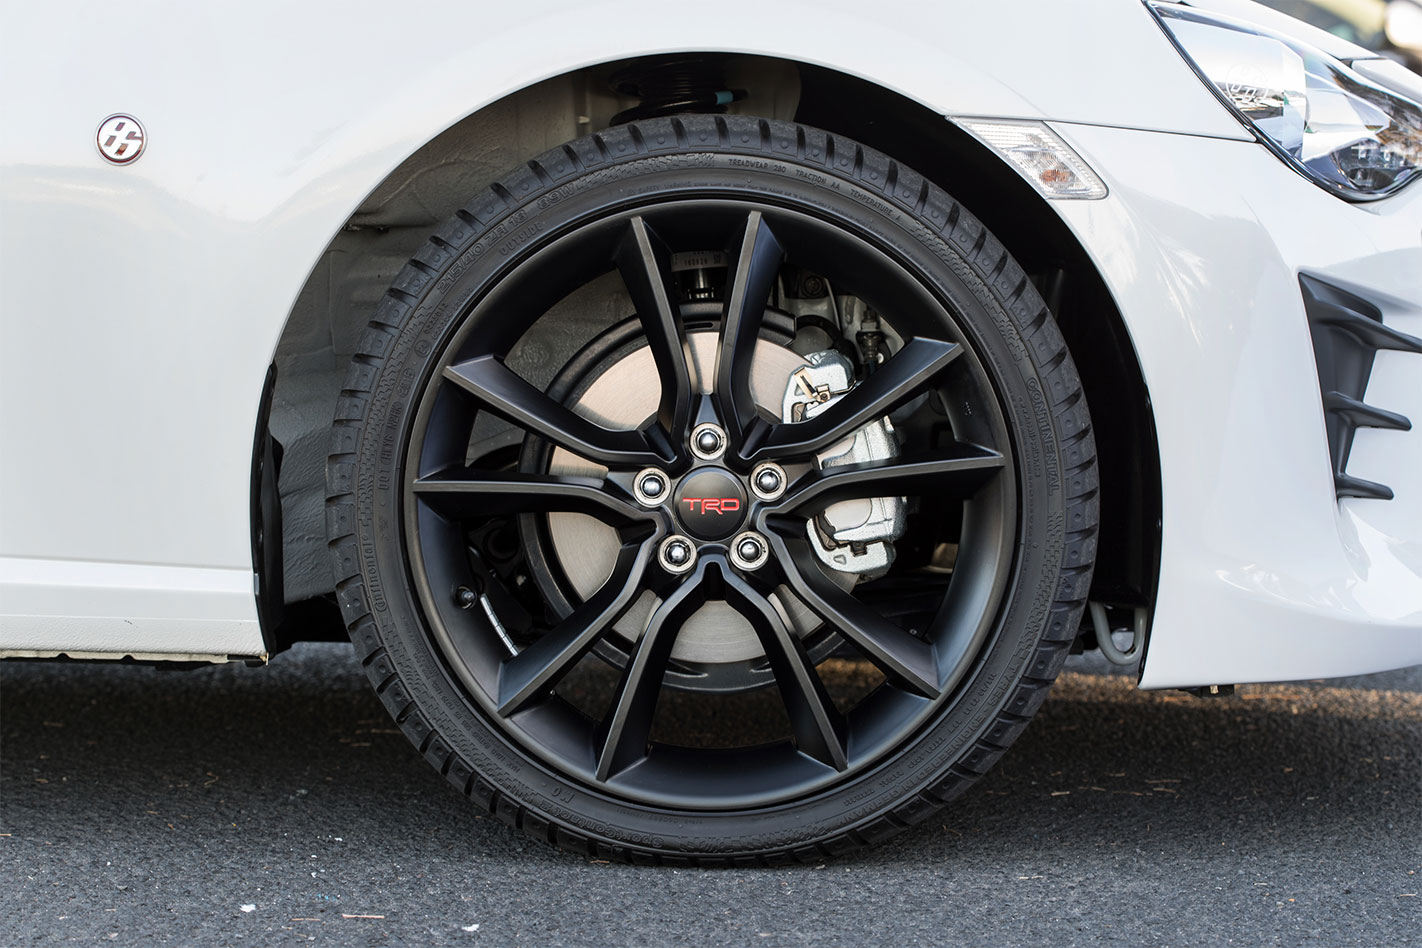 Toyota 86 TRD wheels